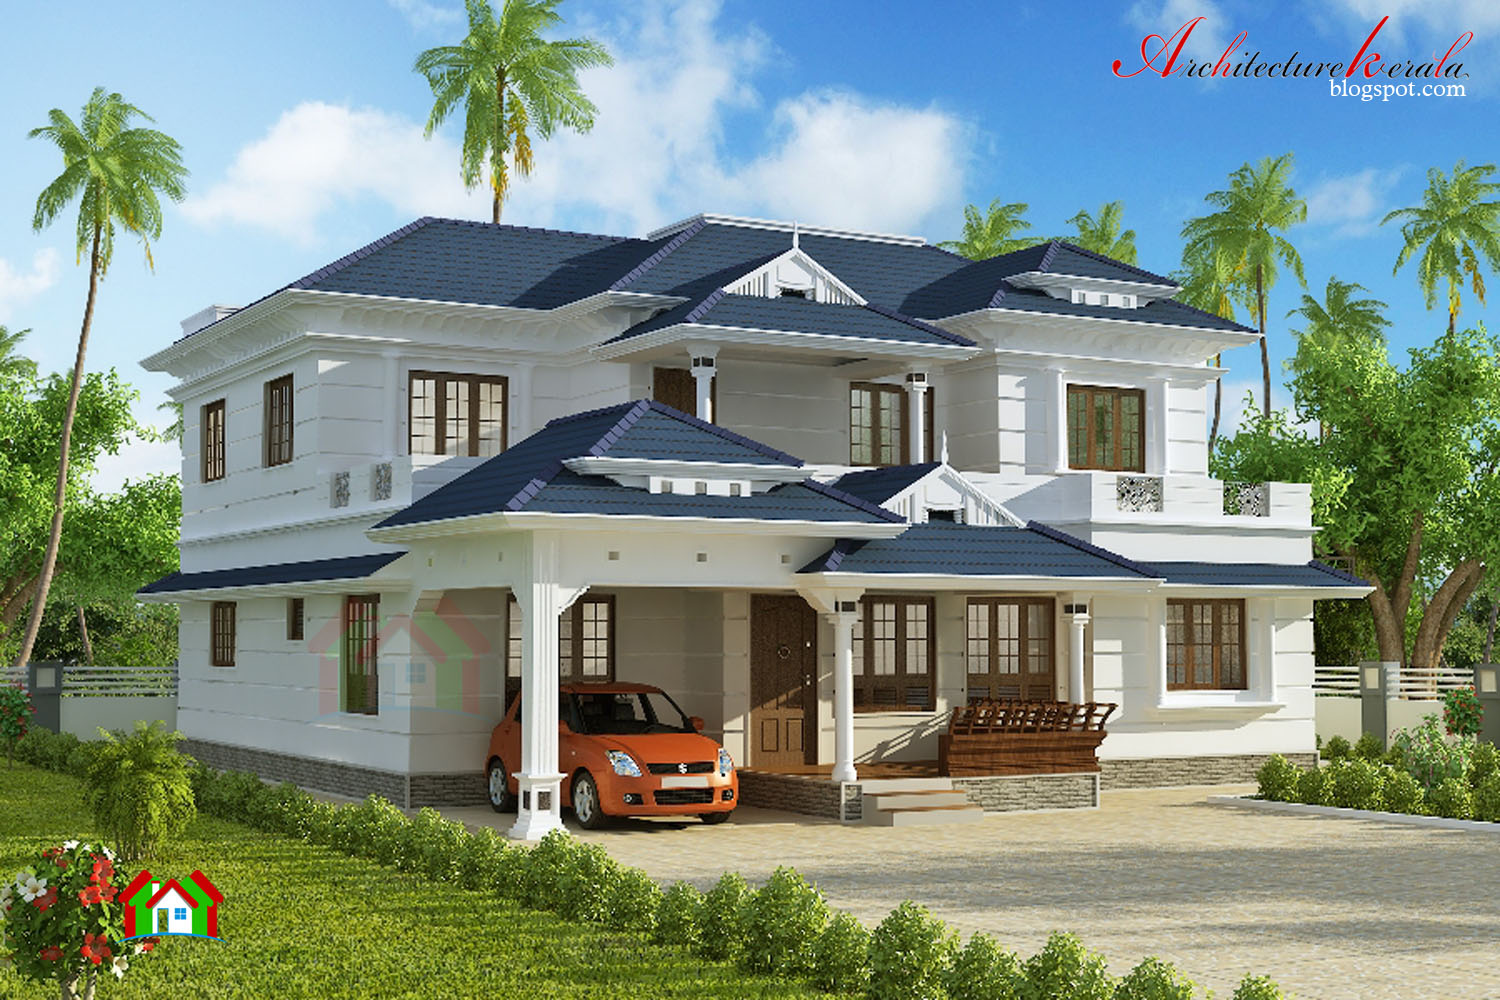 Architecture Kerala 3000 Square Feet House Plan: 3000 square foot homes